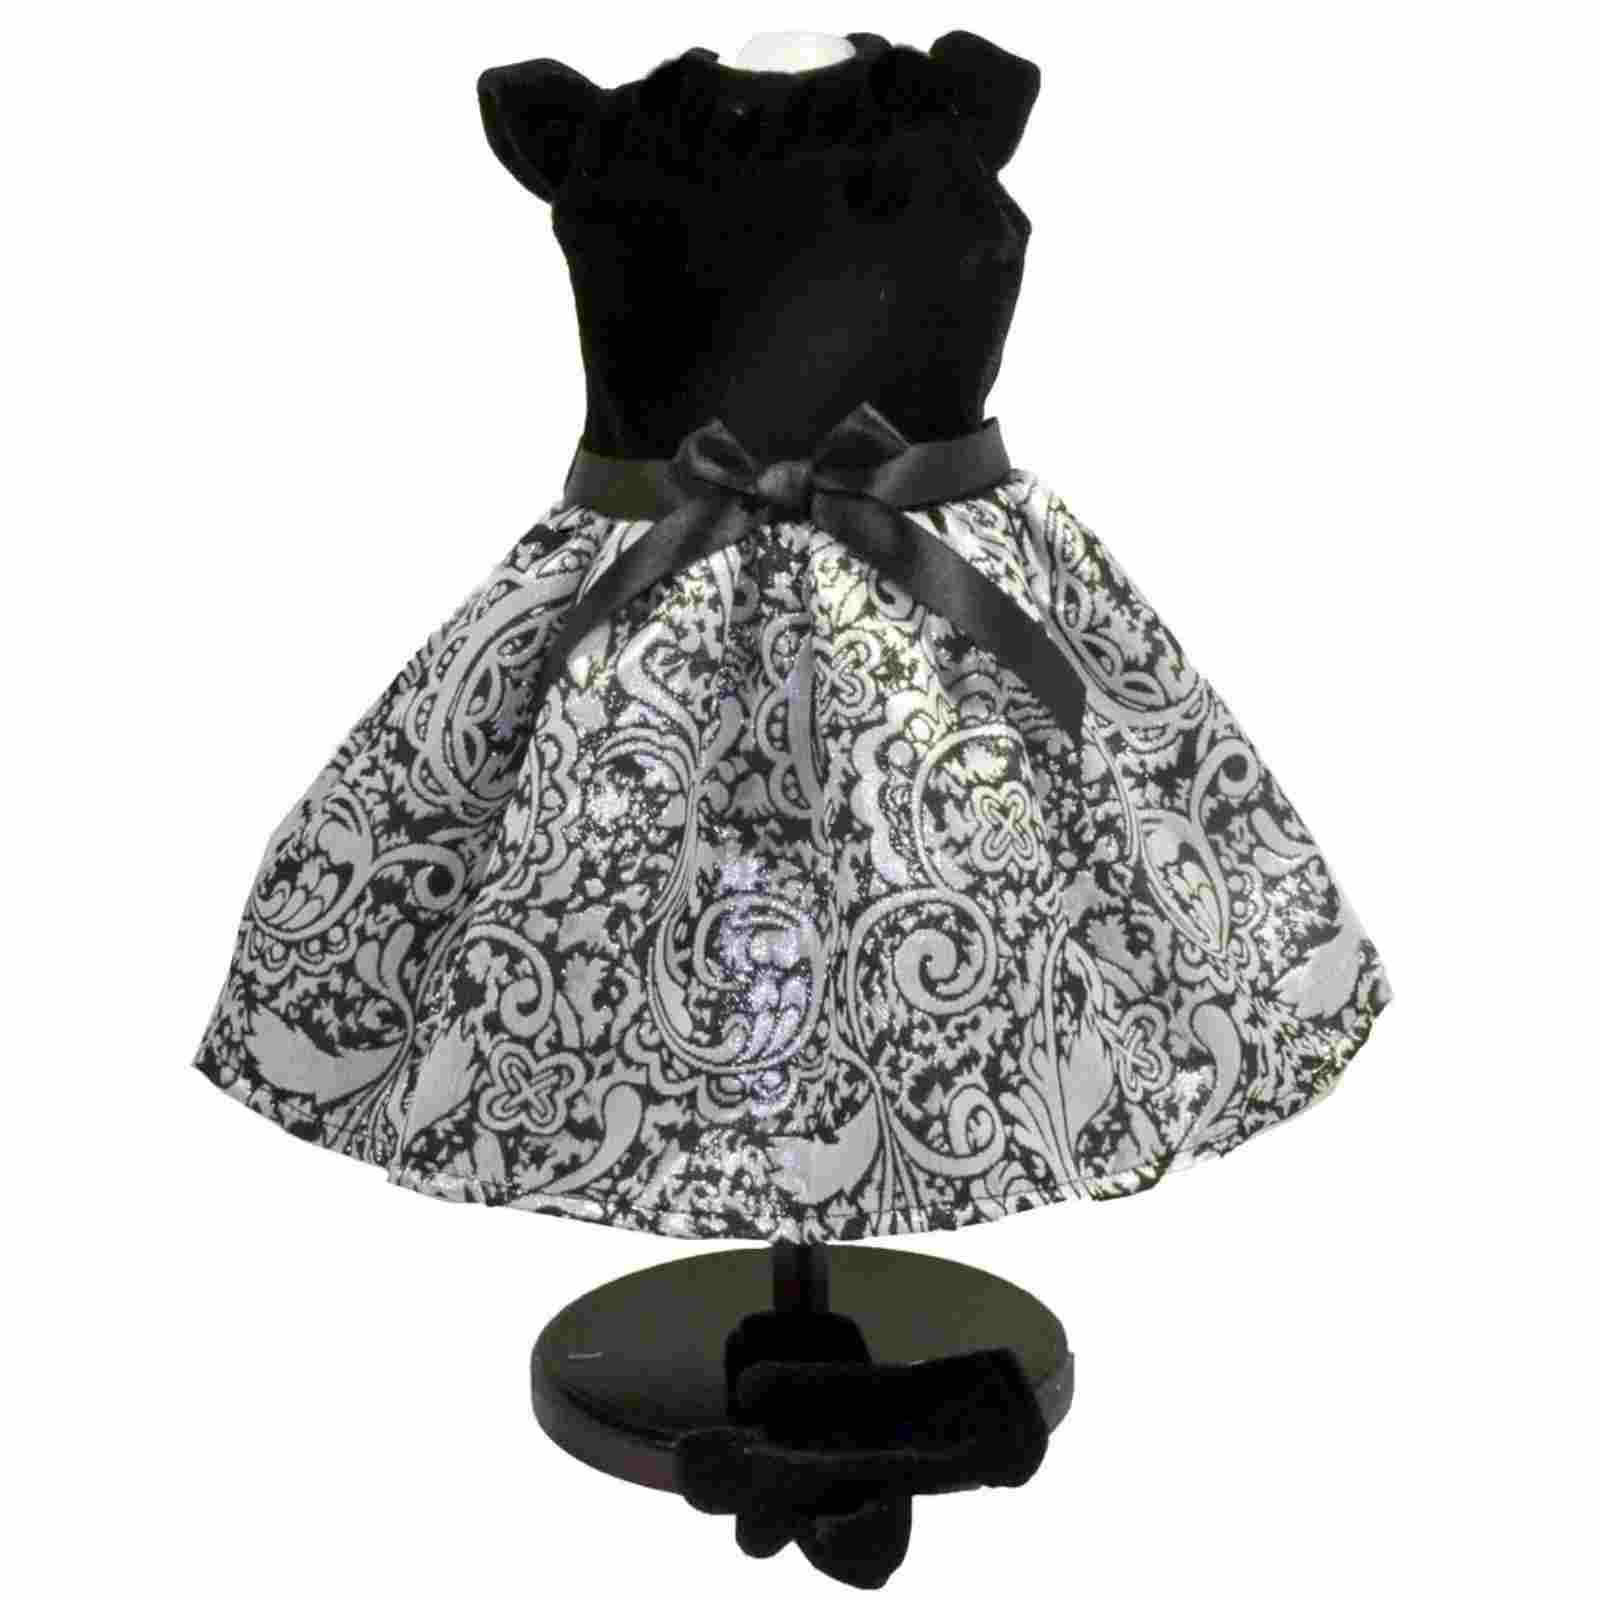 18 Inch Doll Clothes Outfit Black Velvet & Metallic Silver Dress & Velvet Long Gloves